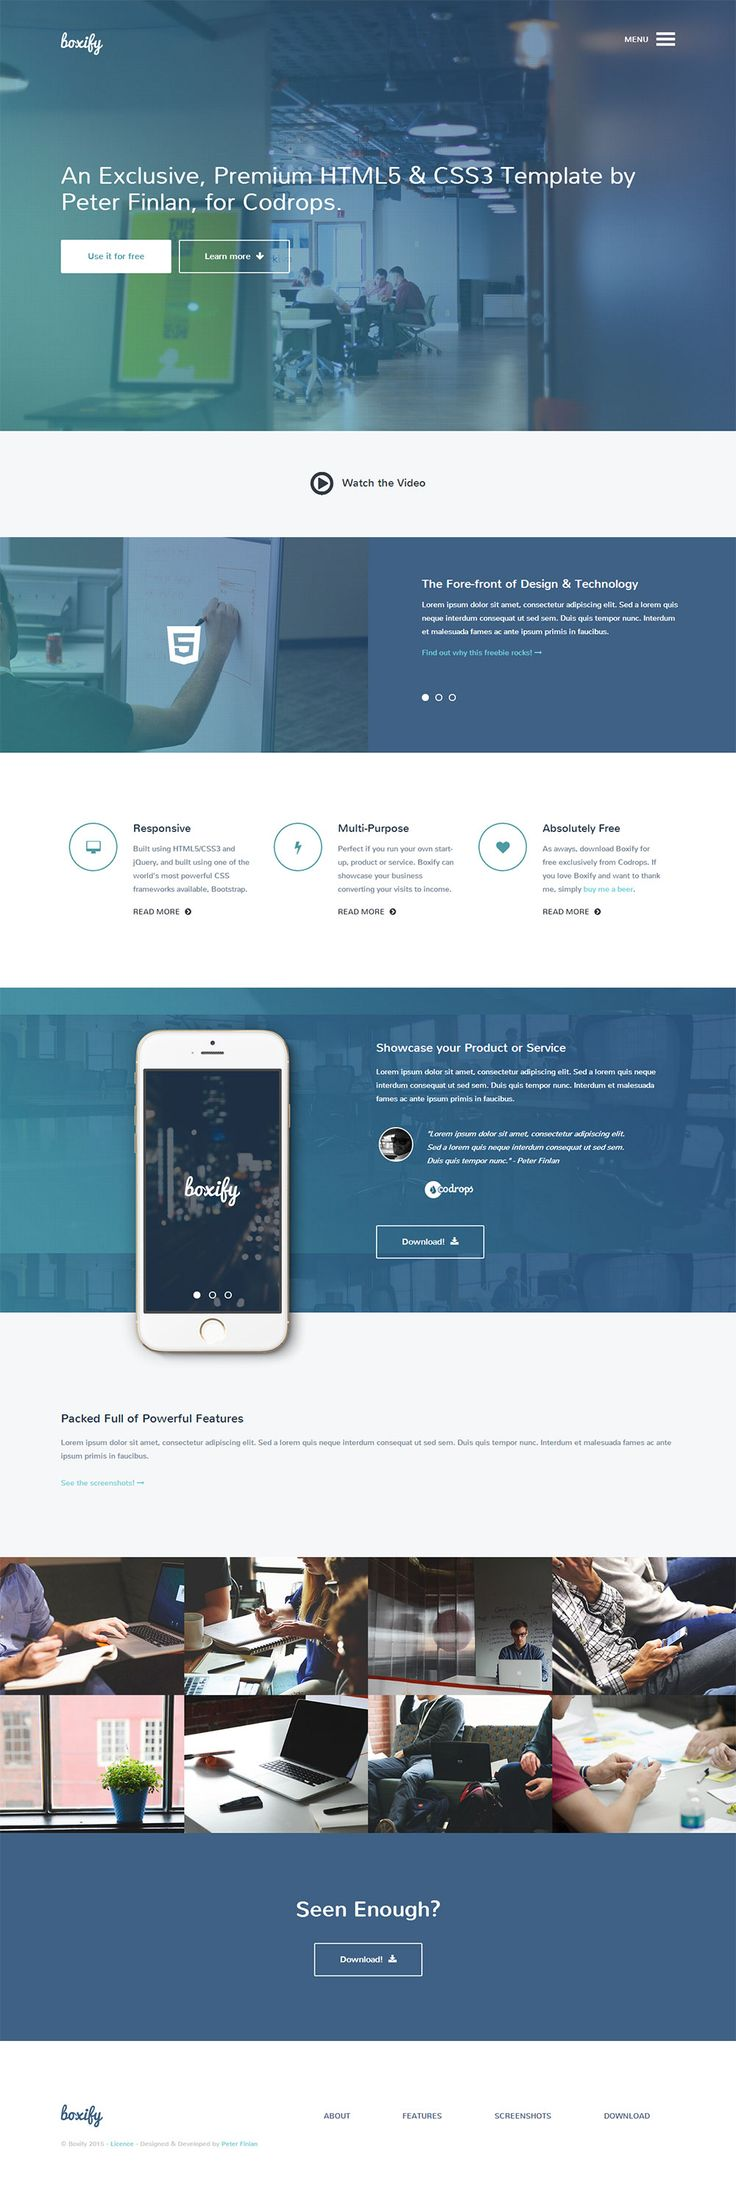 The Best HTML Template Images On Pinterest Design Web Ui Ux - One page website template html5 responsive free download